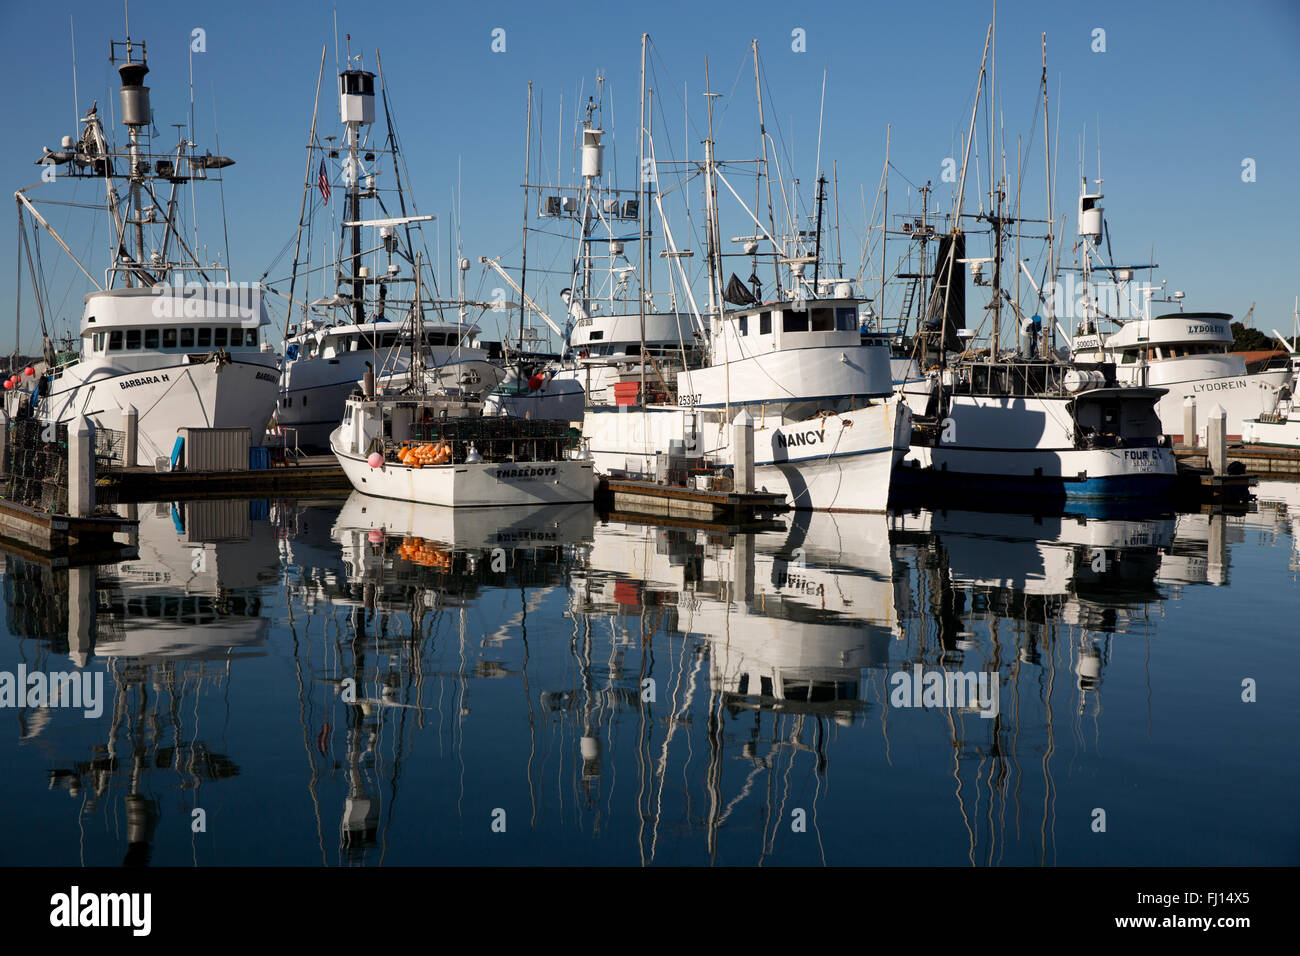 Commercial Fishing Stock Photos & Commercial Fishing Stock